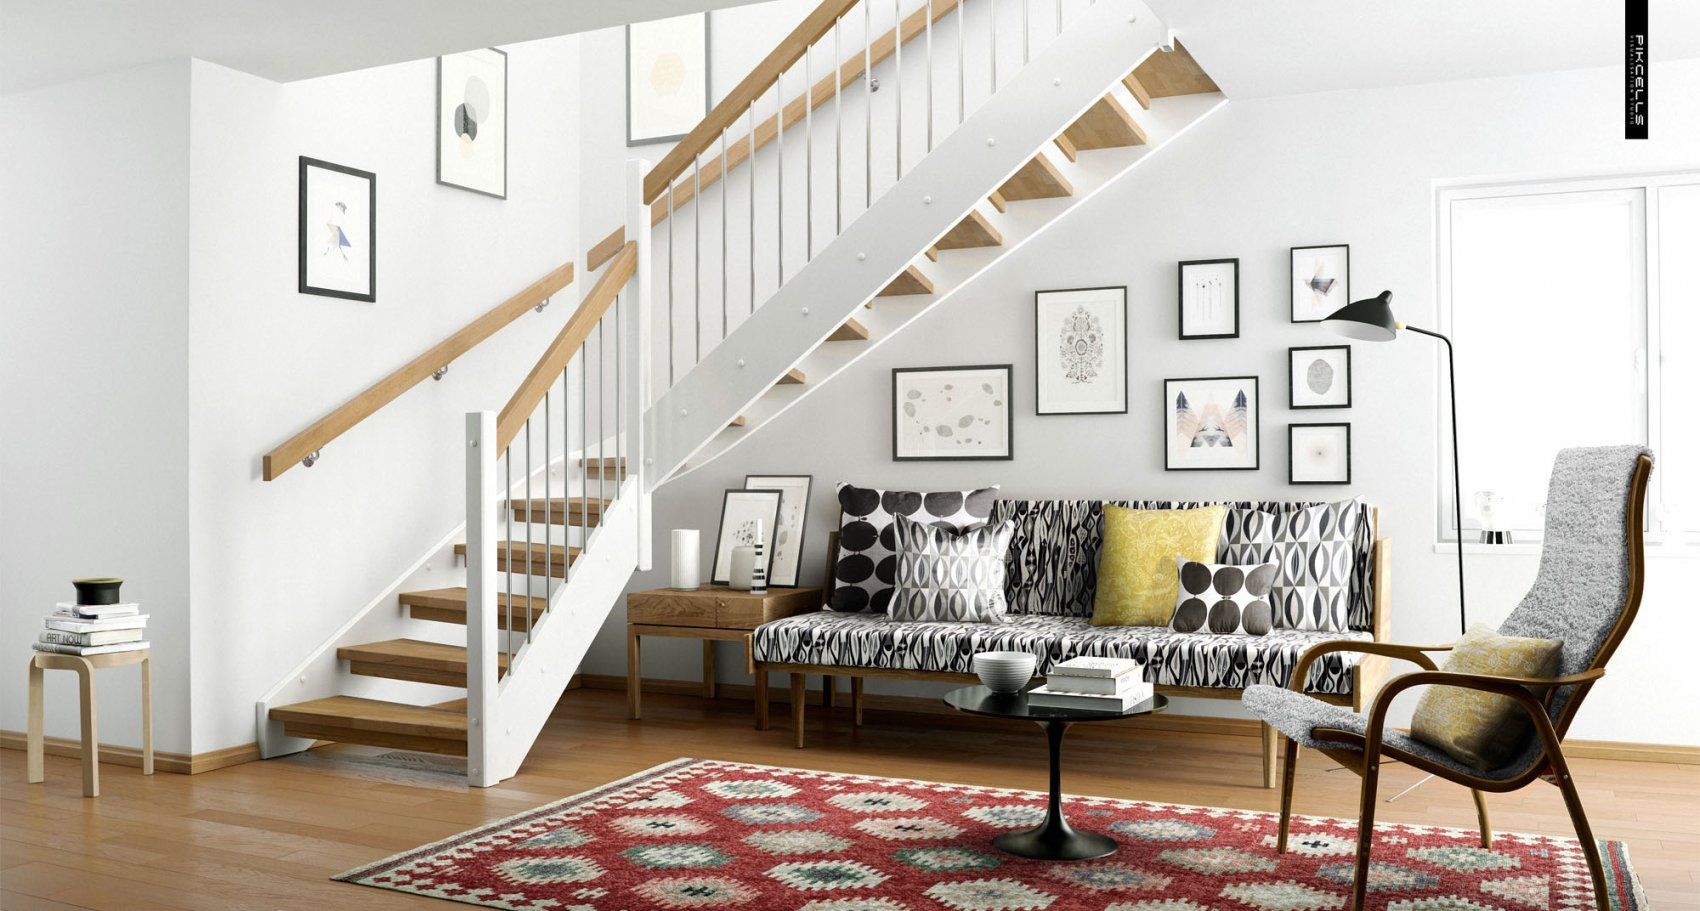 under-the-stairs-scandinavian-decor